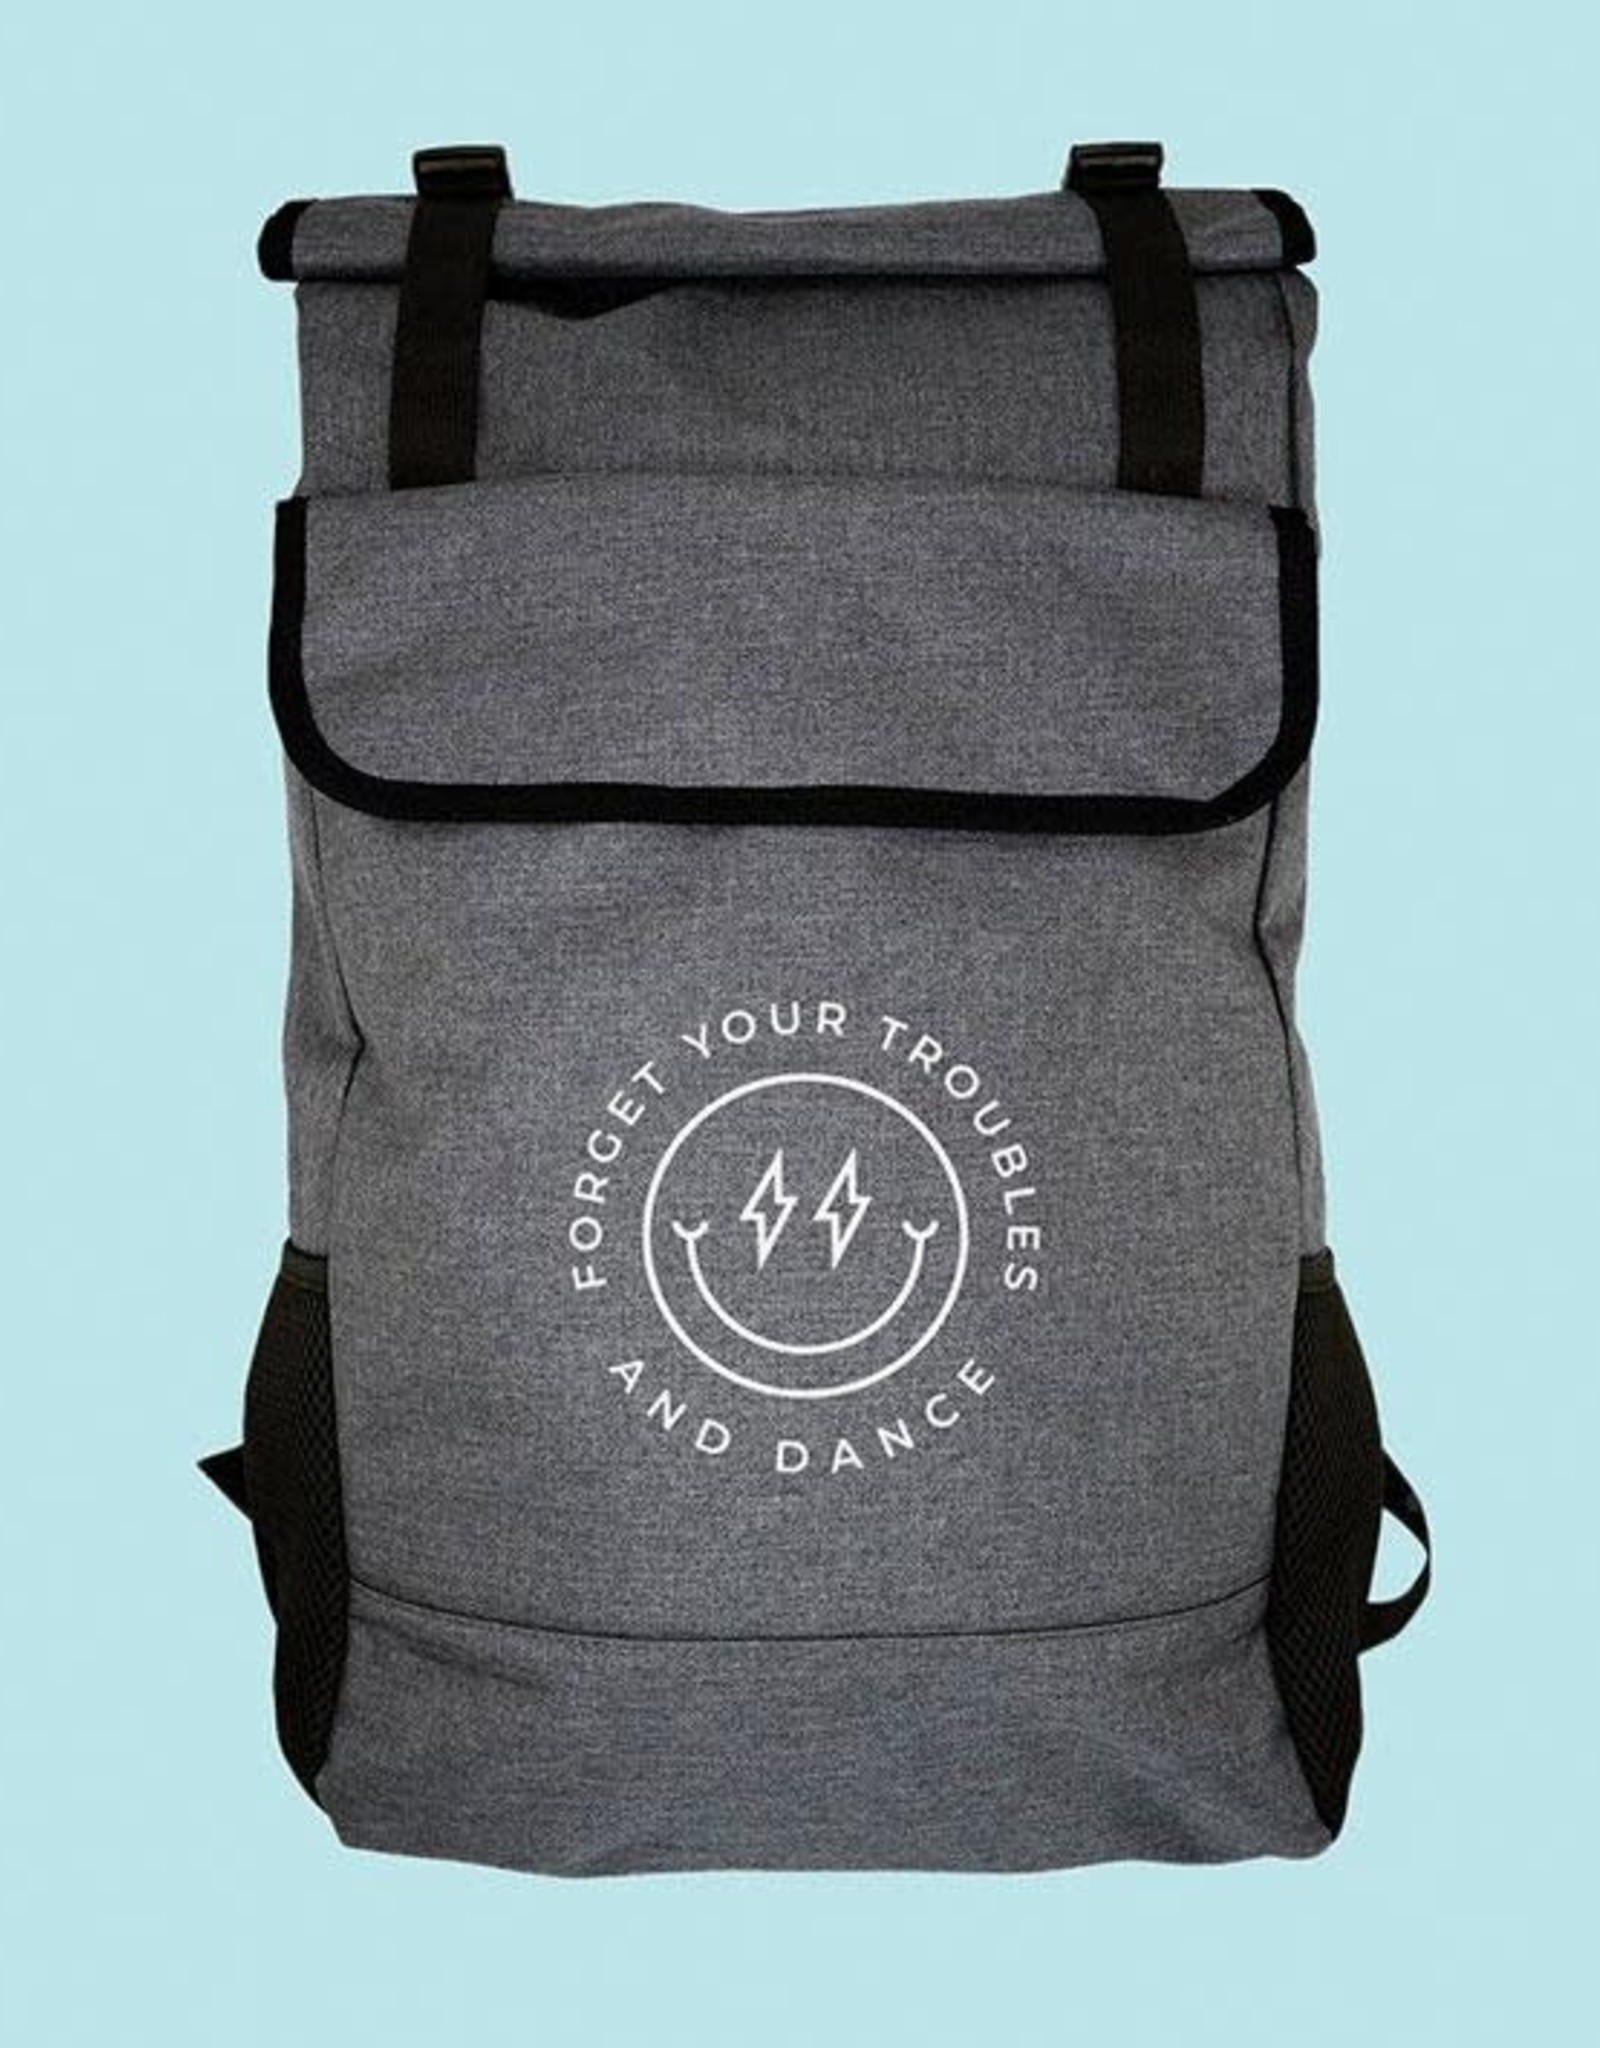 Covet Forget Your Troubles and Dance - Roll-Top Backpack